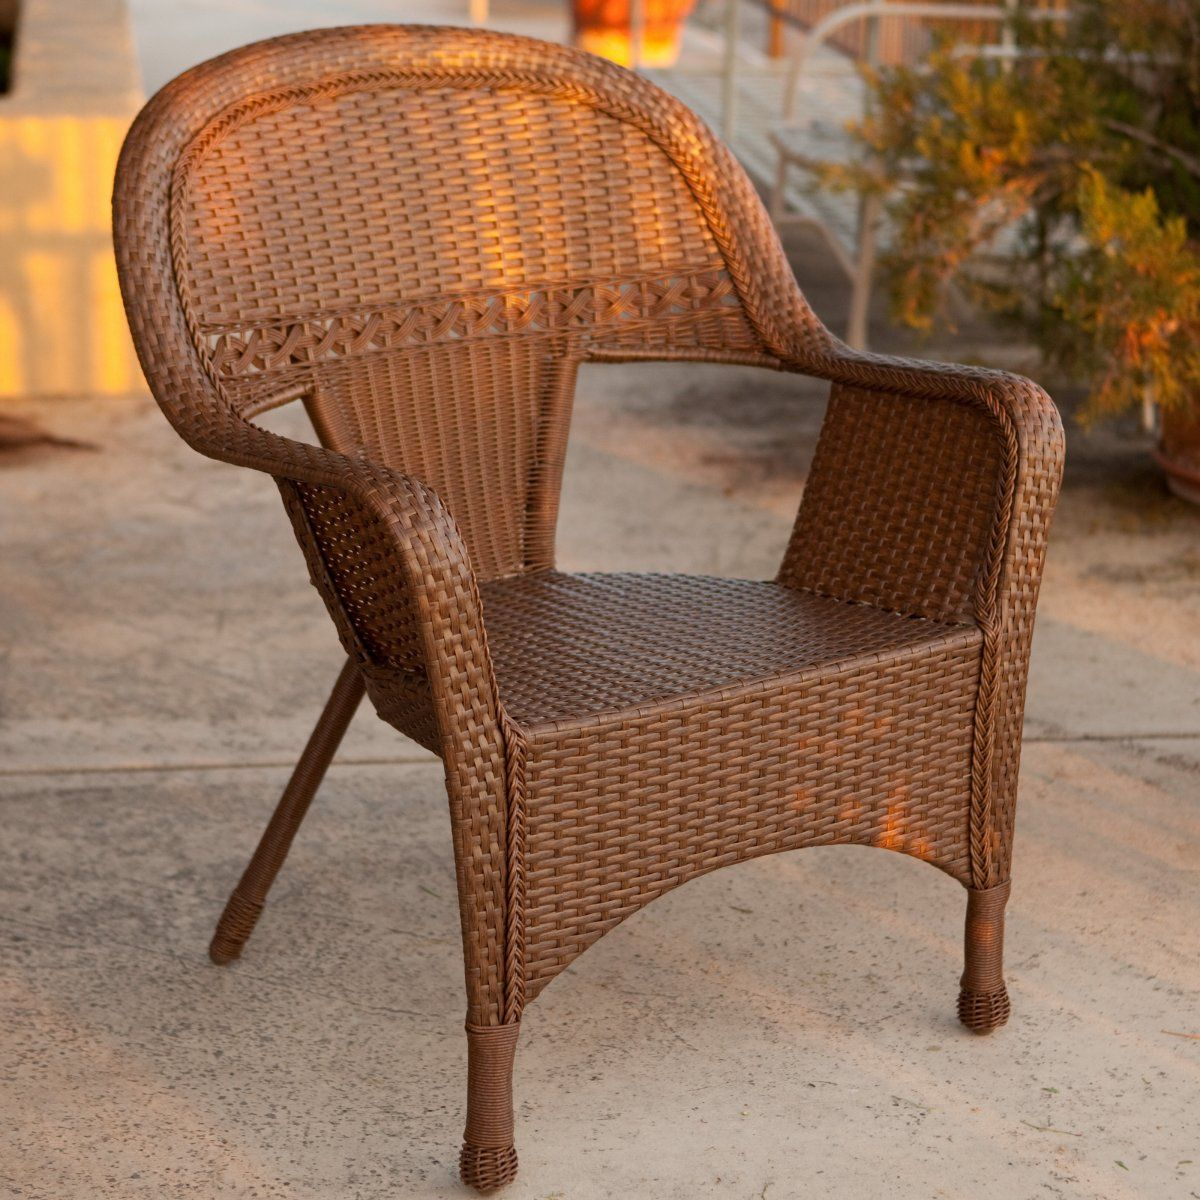 Key west allweather wicker lounge chair chairs cushions and